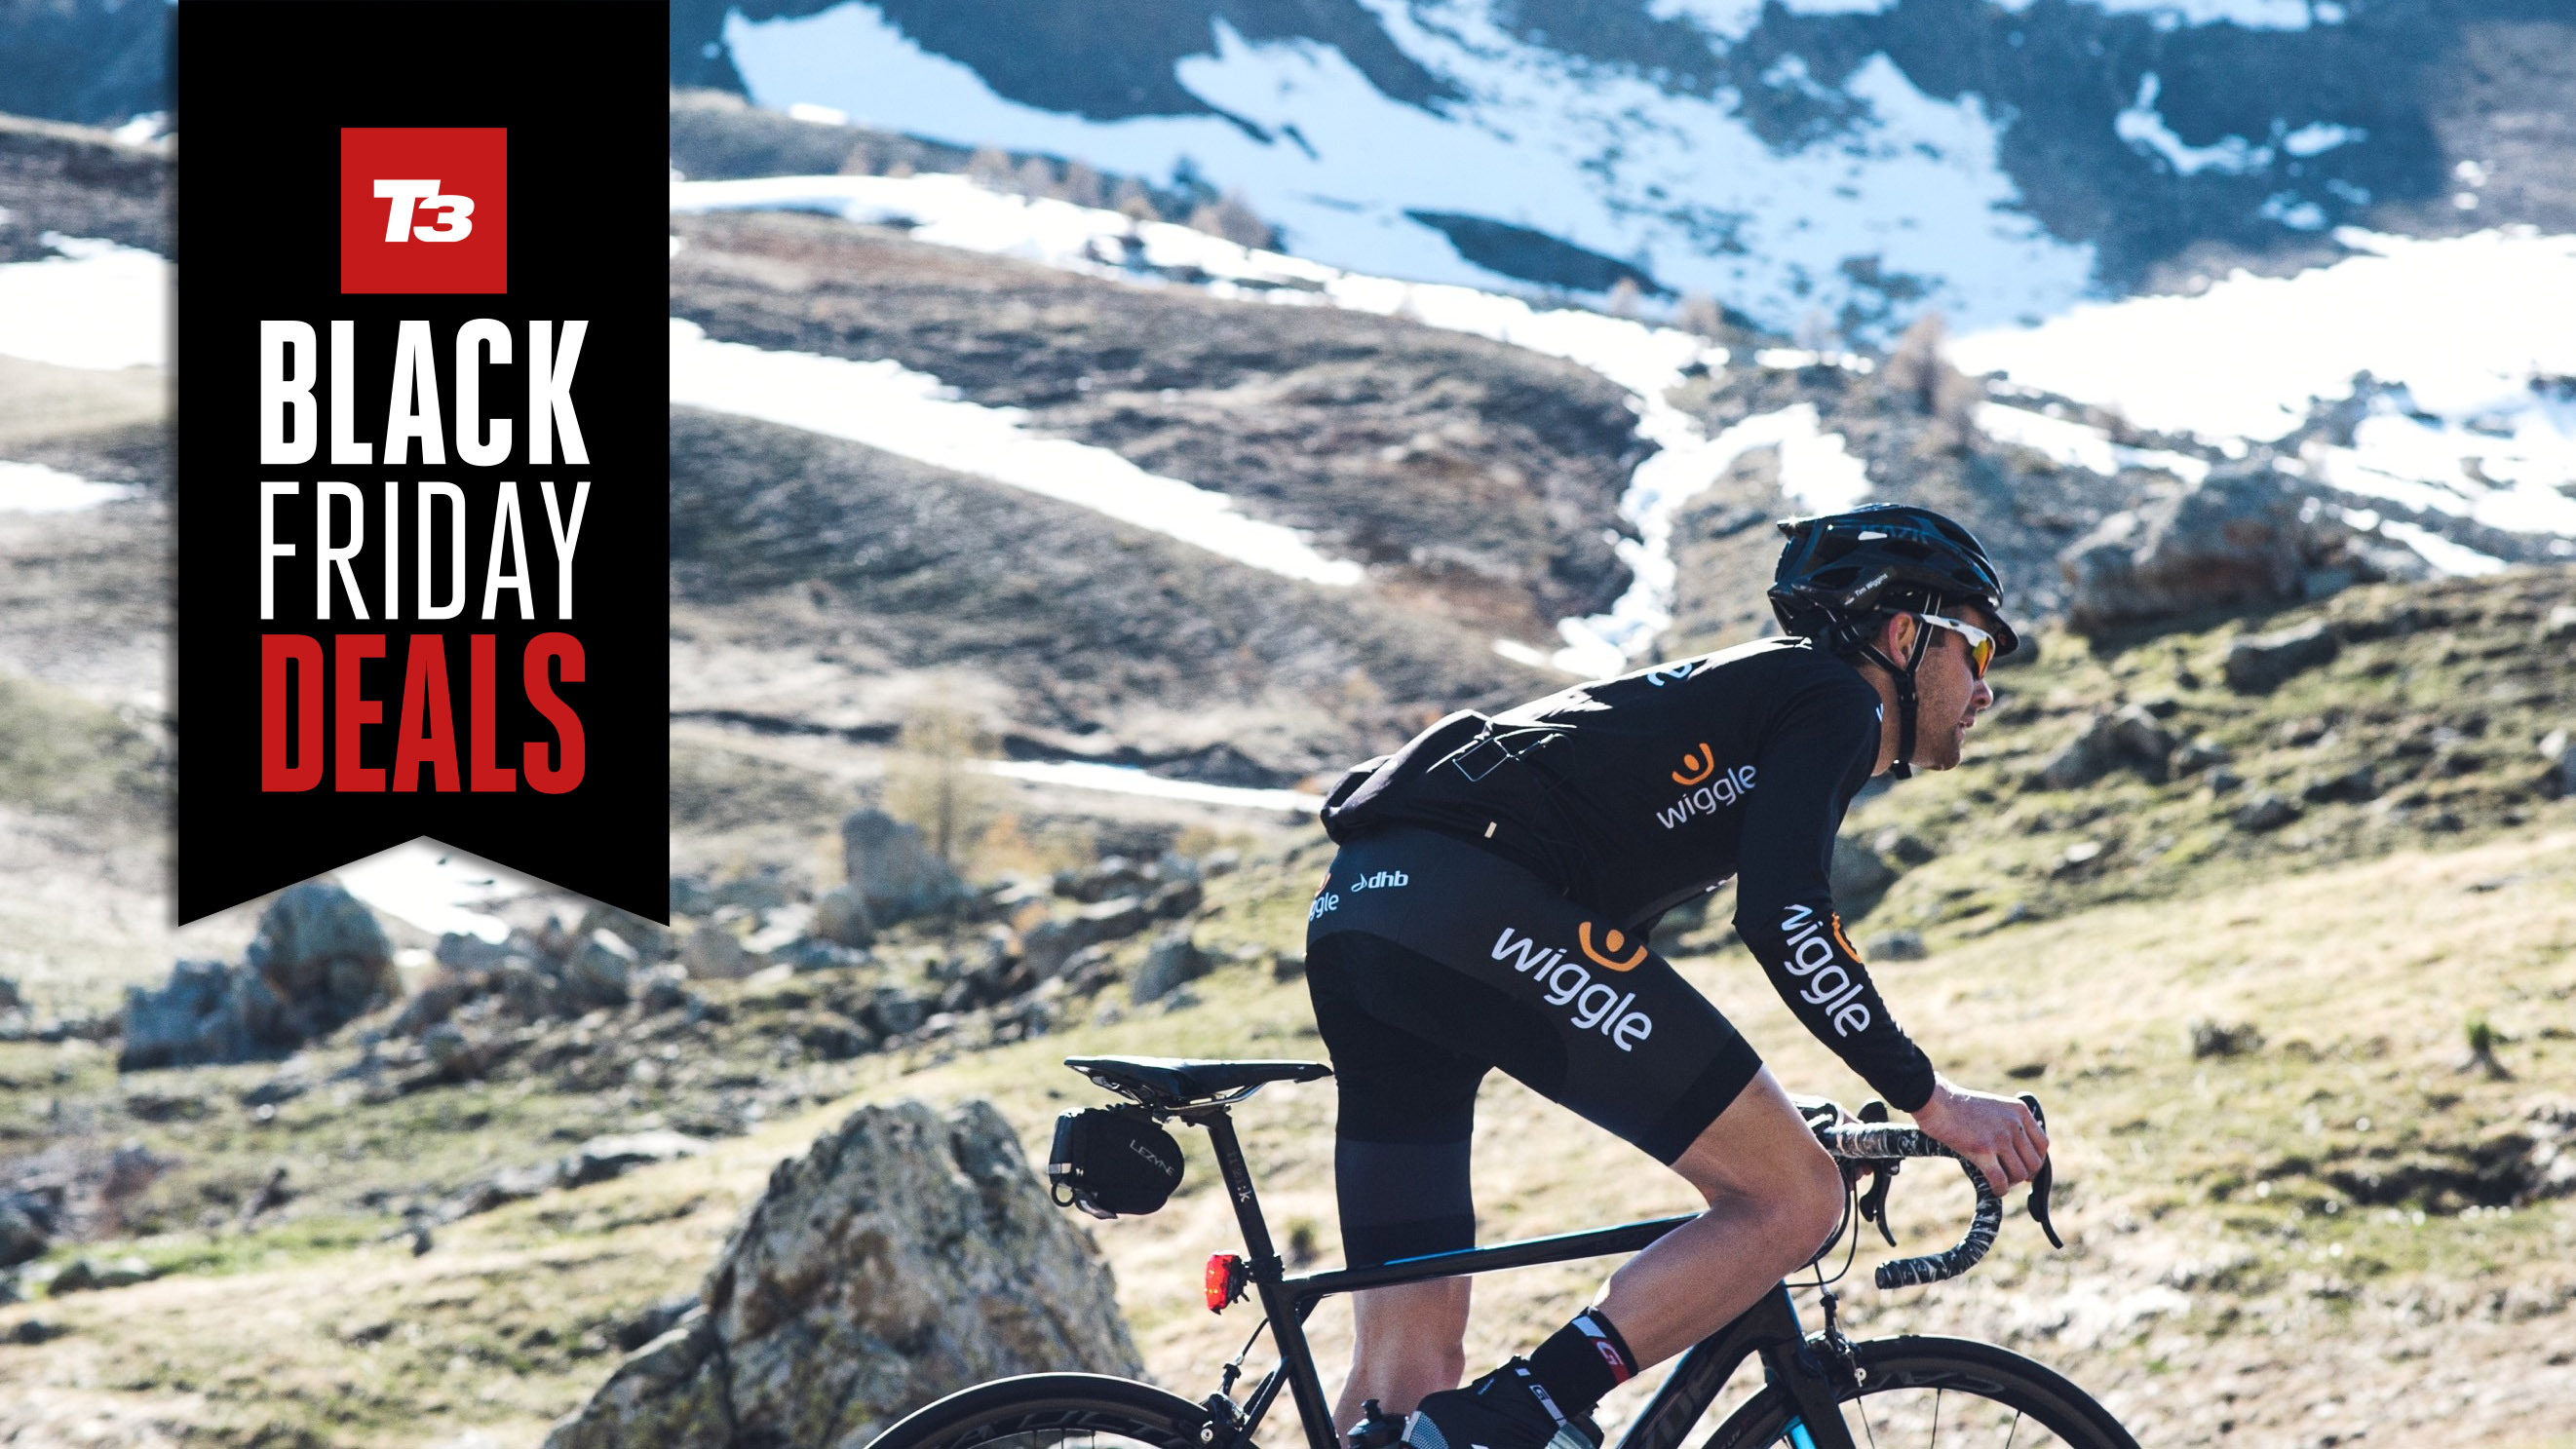 Wiggle Black Friday Deals The Best Deals On Cycling Gear Turbo Trainers Running Shoes And More T3